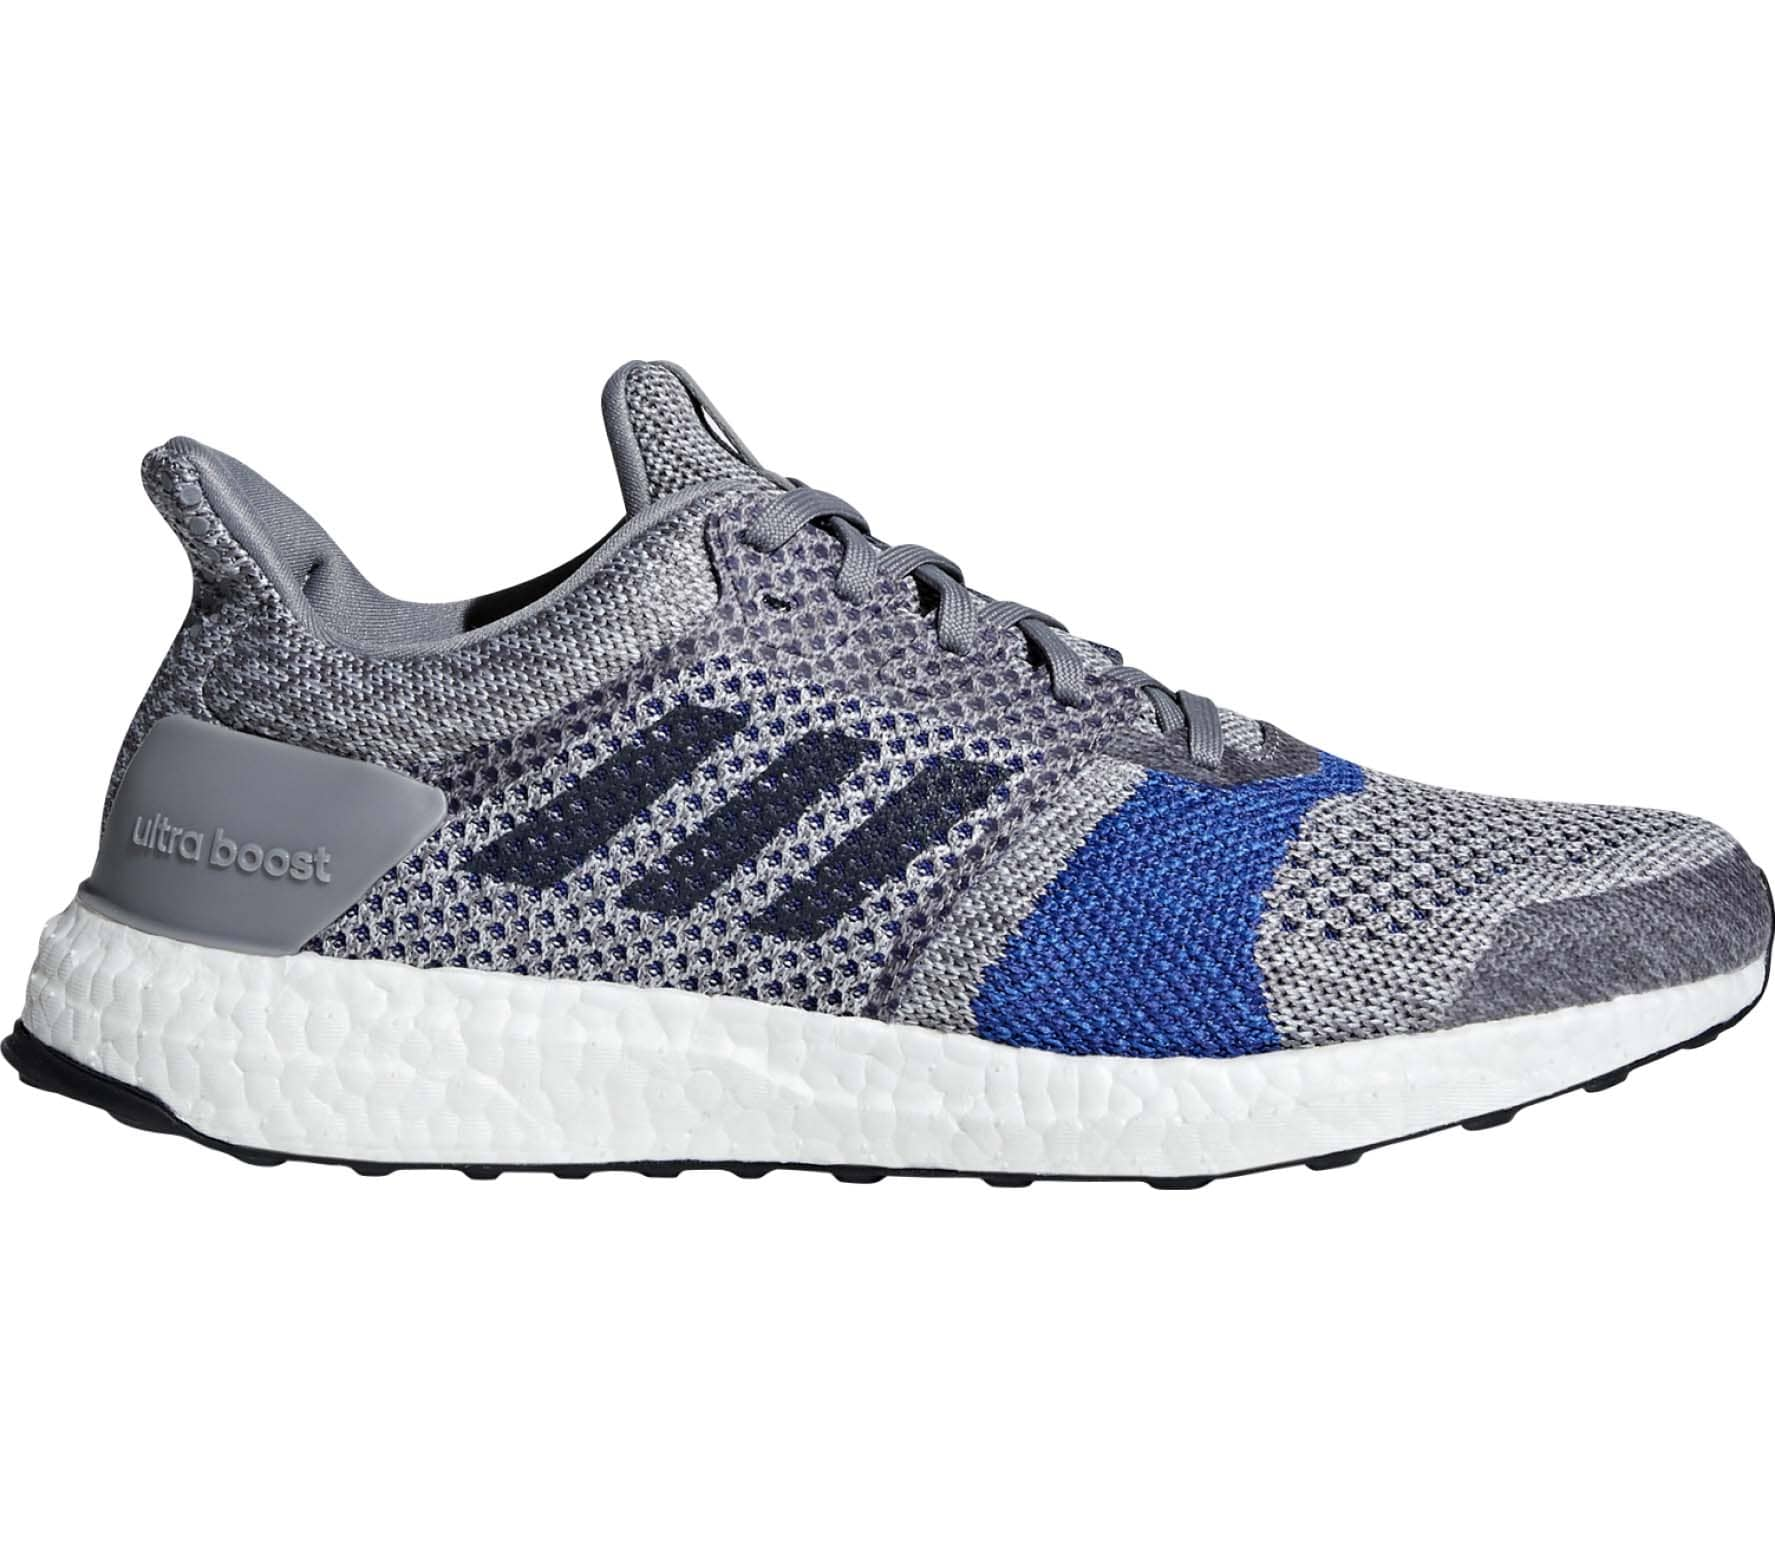 Adidas Boost Ultra St Gris Running Chaussures Hommes rWCodxBe